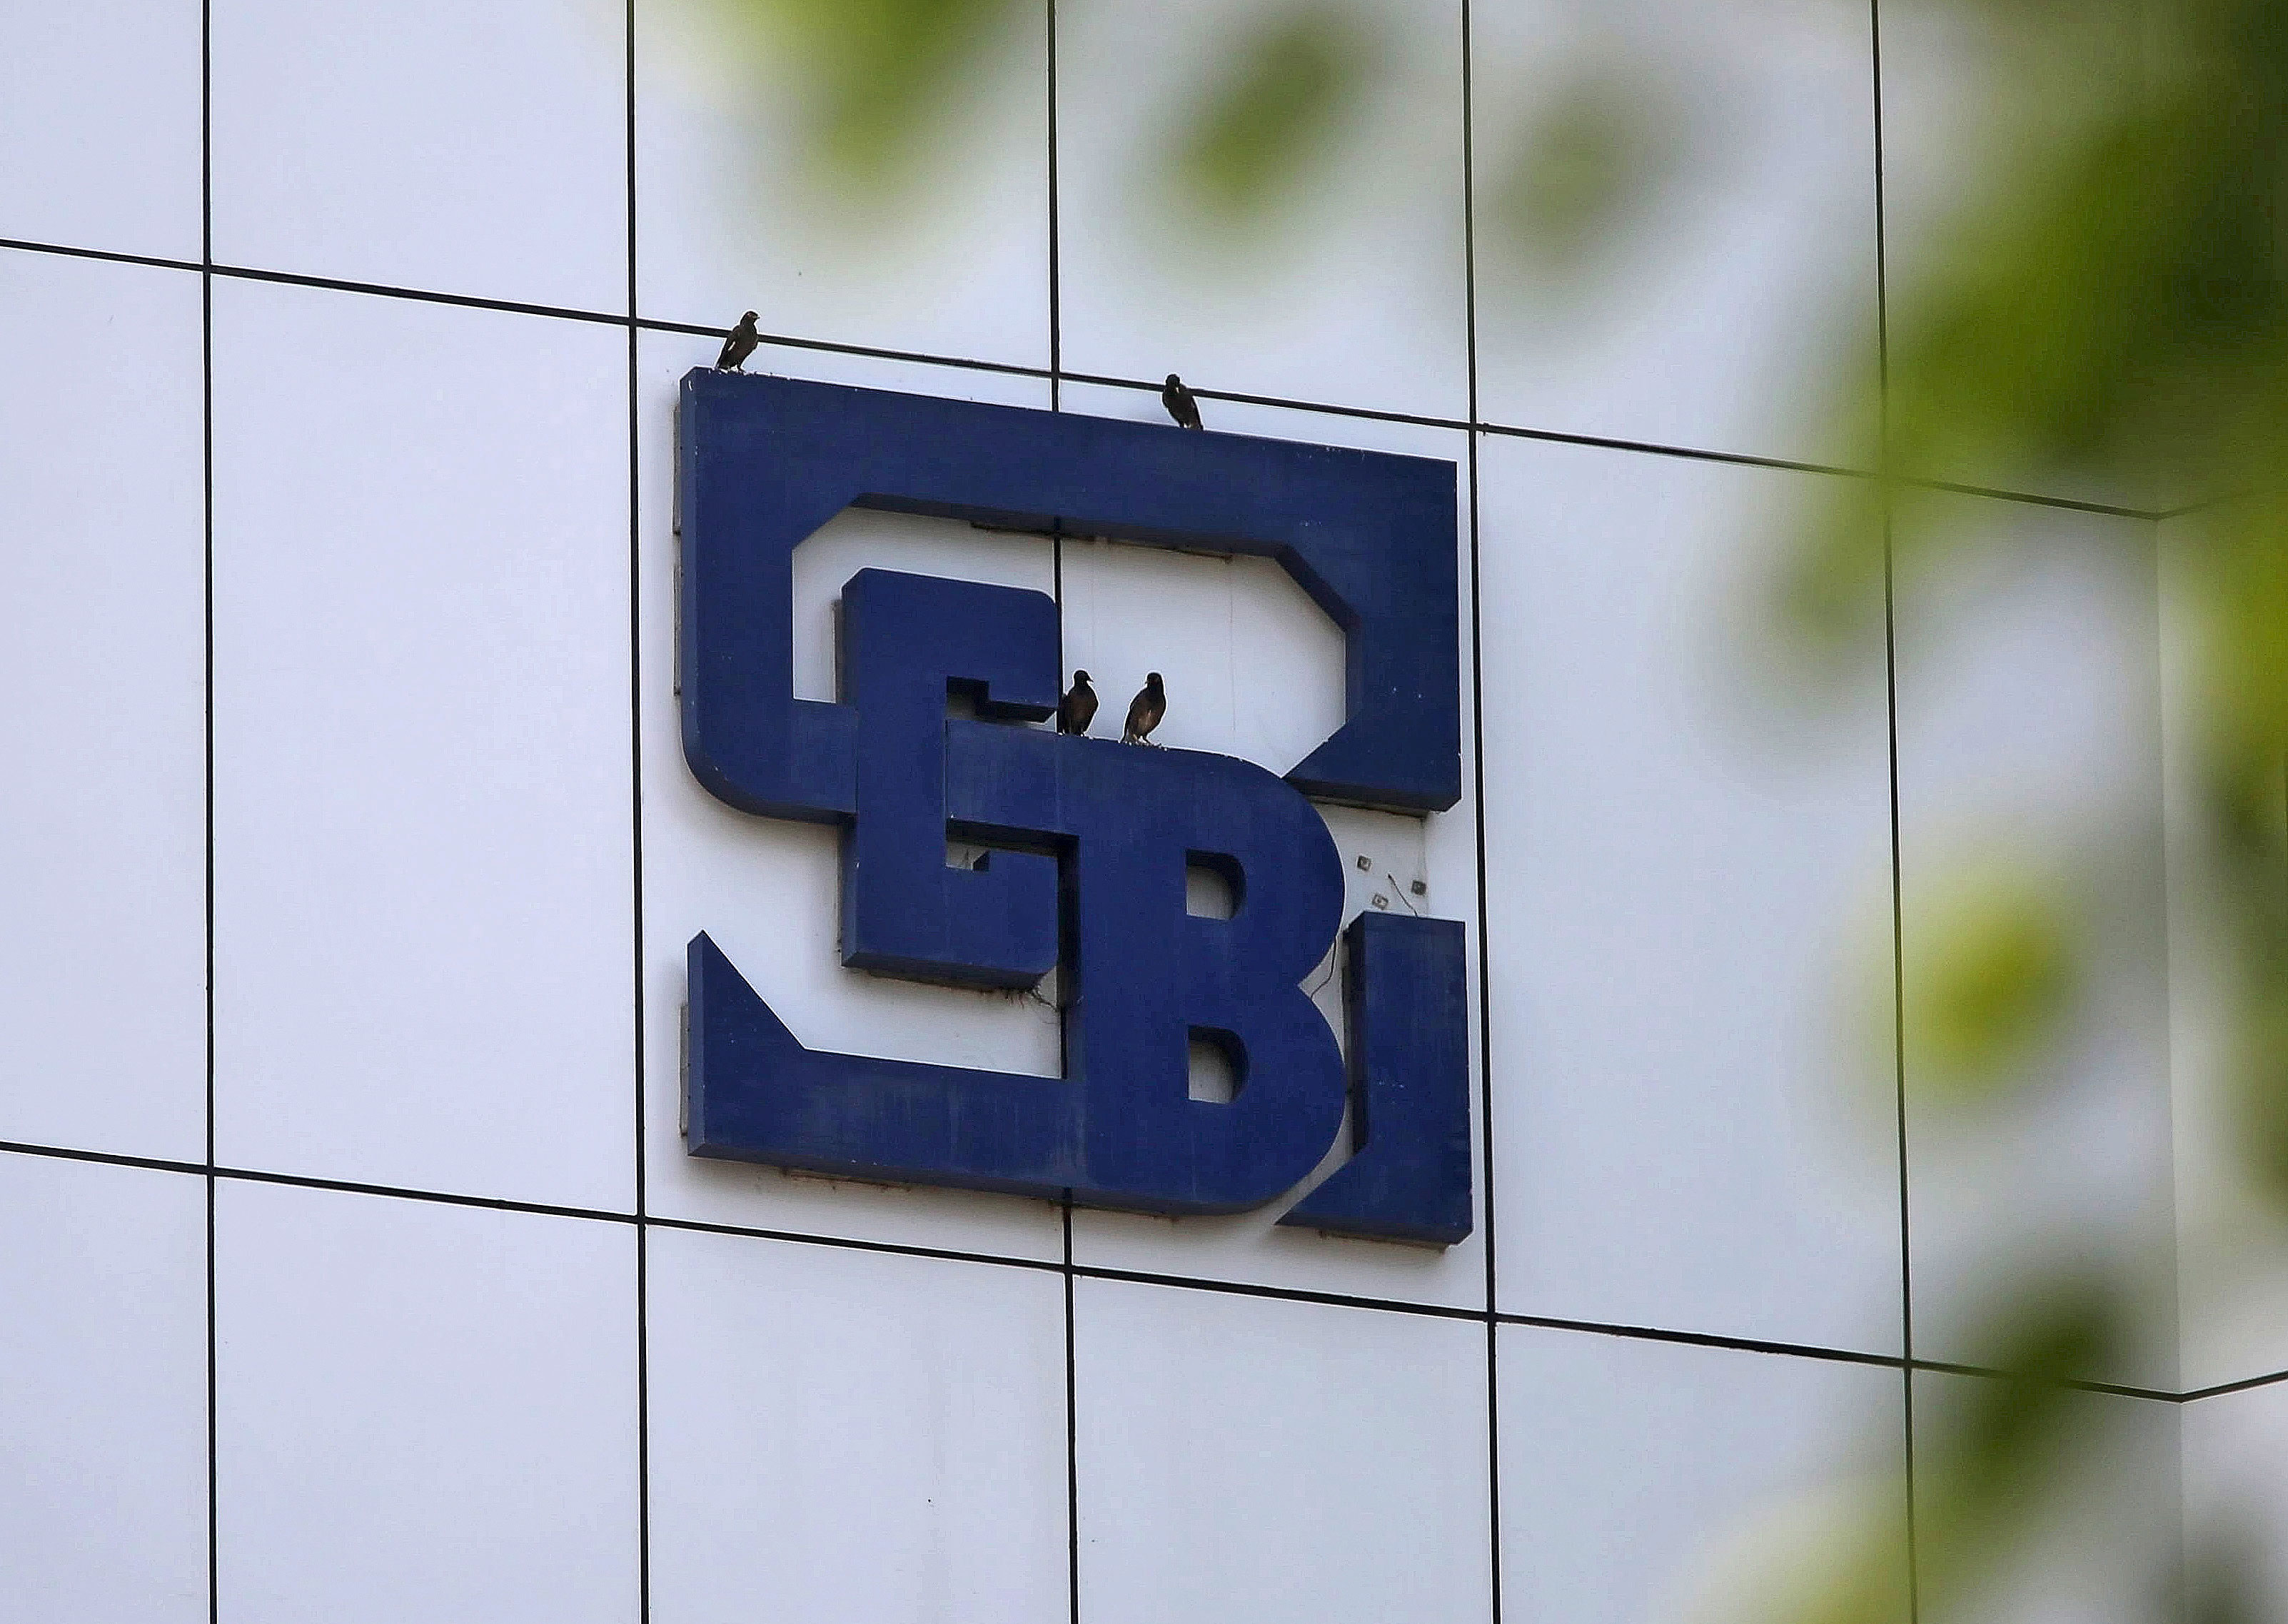 SEBI may ease norms for infra investment trusts